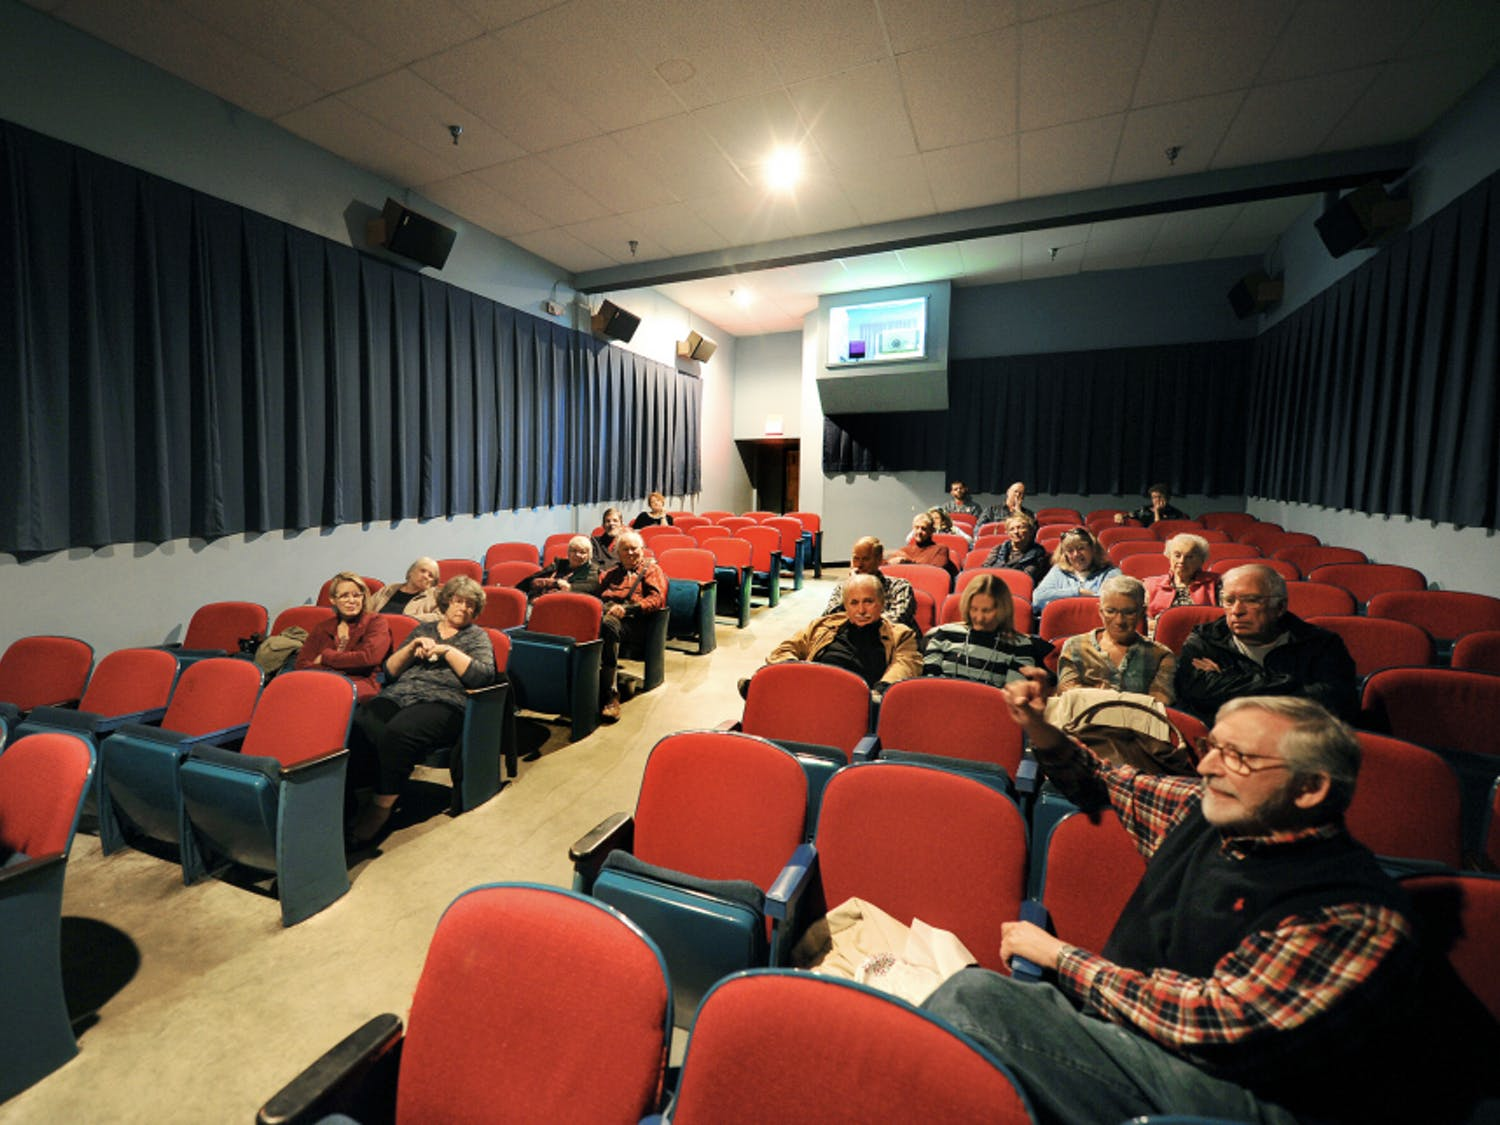 """Chelsea Theater and Carolina Public Humanities are partnering for """"Mornings at the Movies."""" Photo by Donn Young/College of Arts and Sciences"""